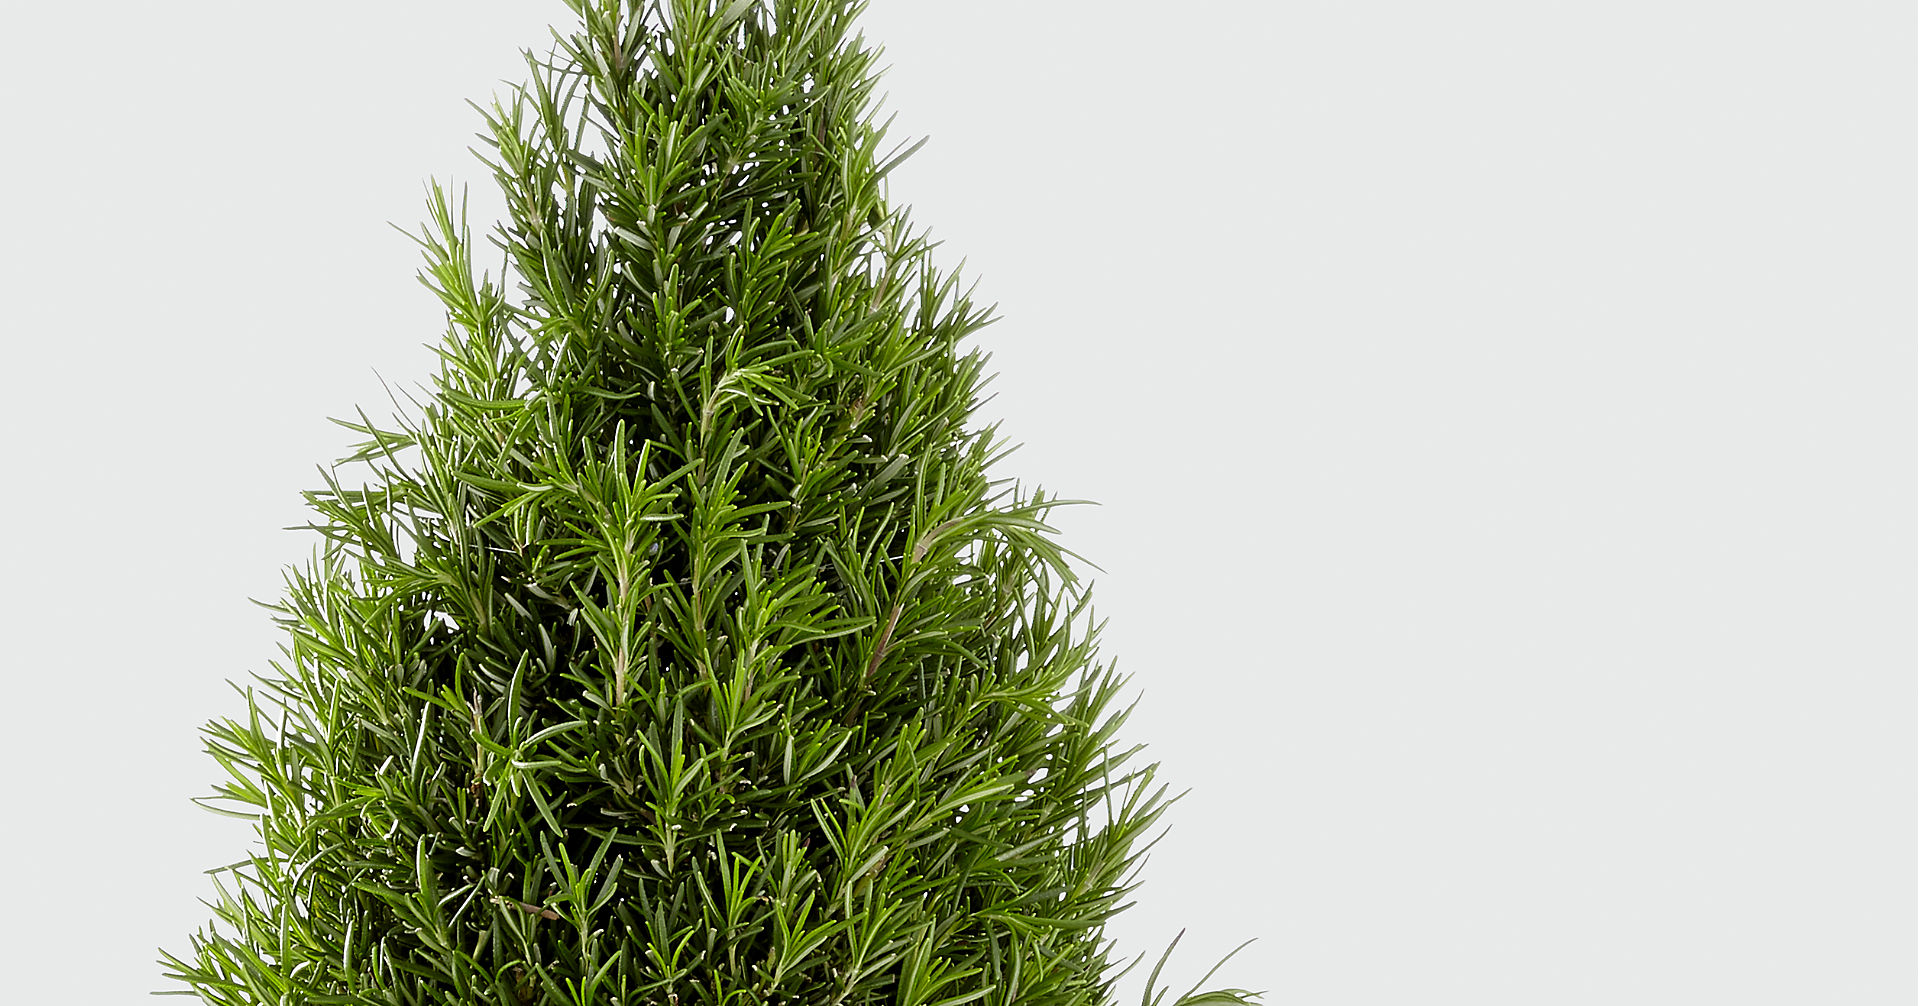 Culinary Dreams Rosemary Tree - Image 2 Of 2